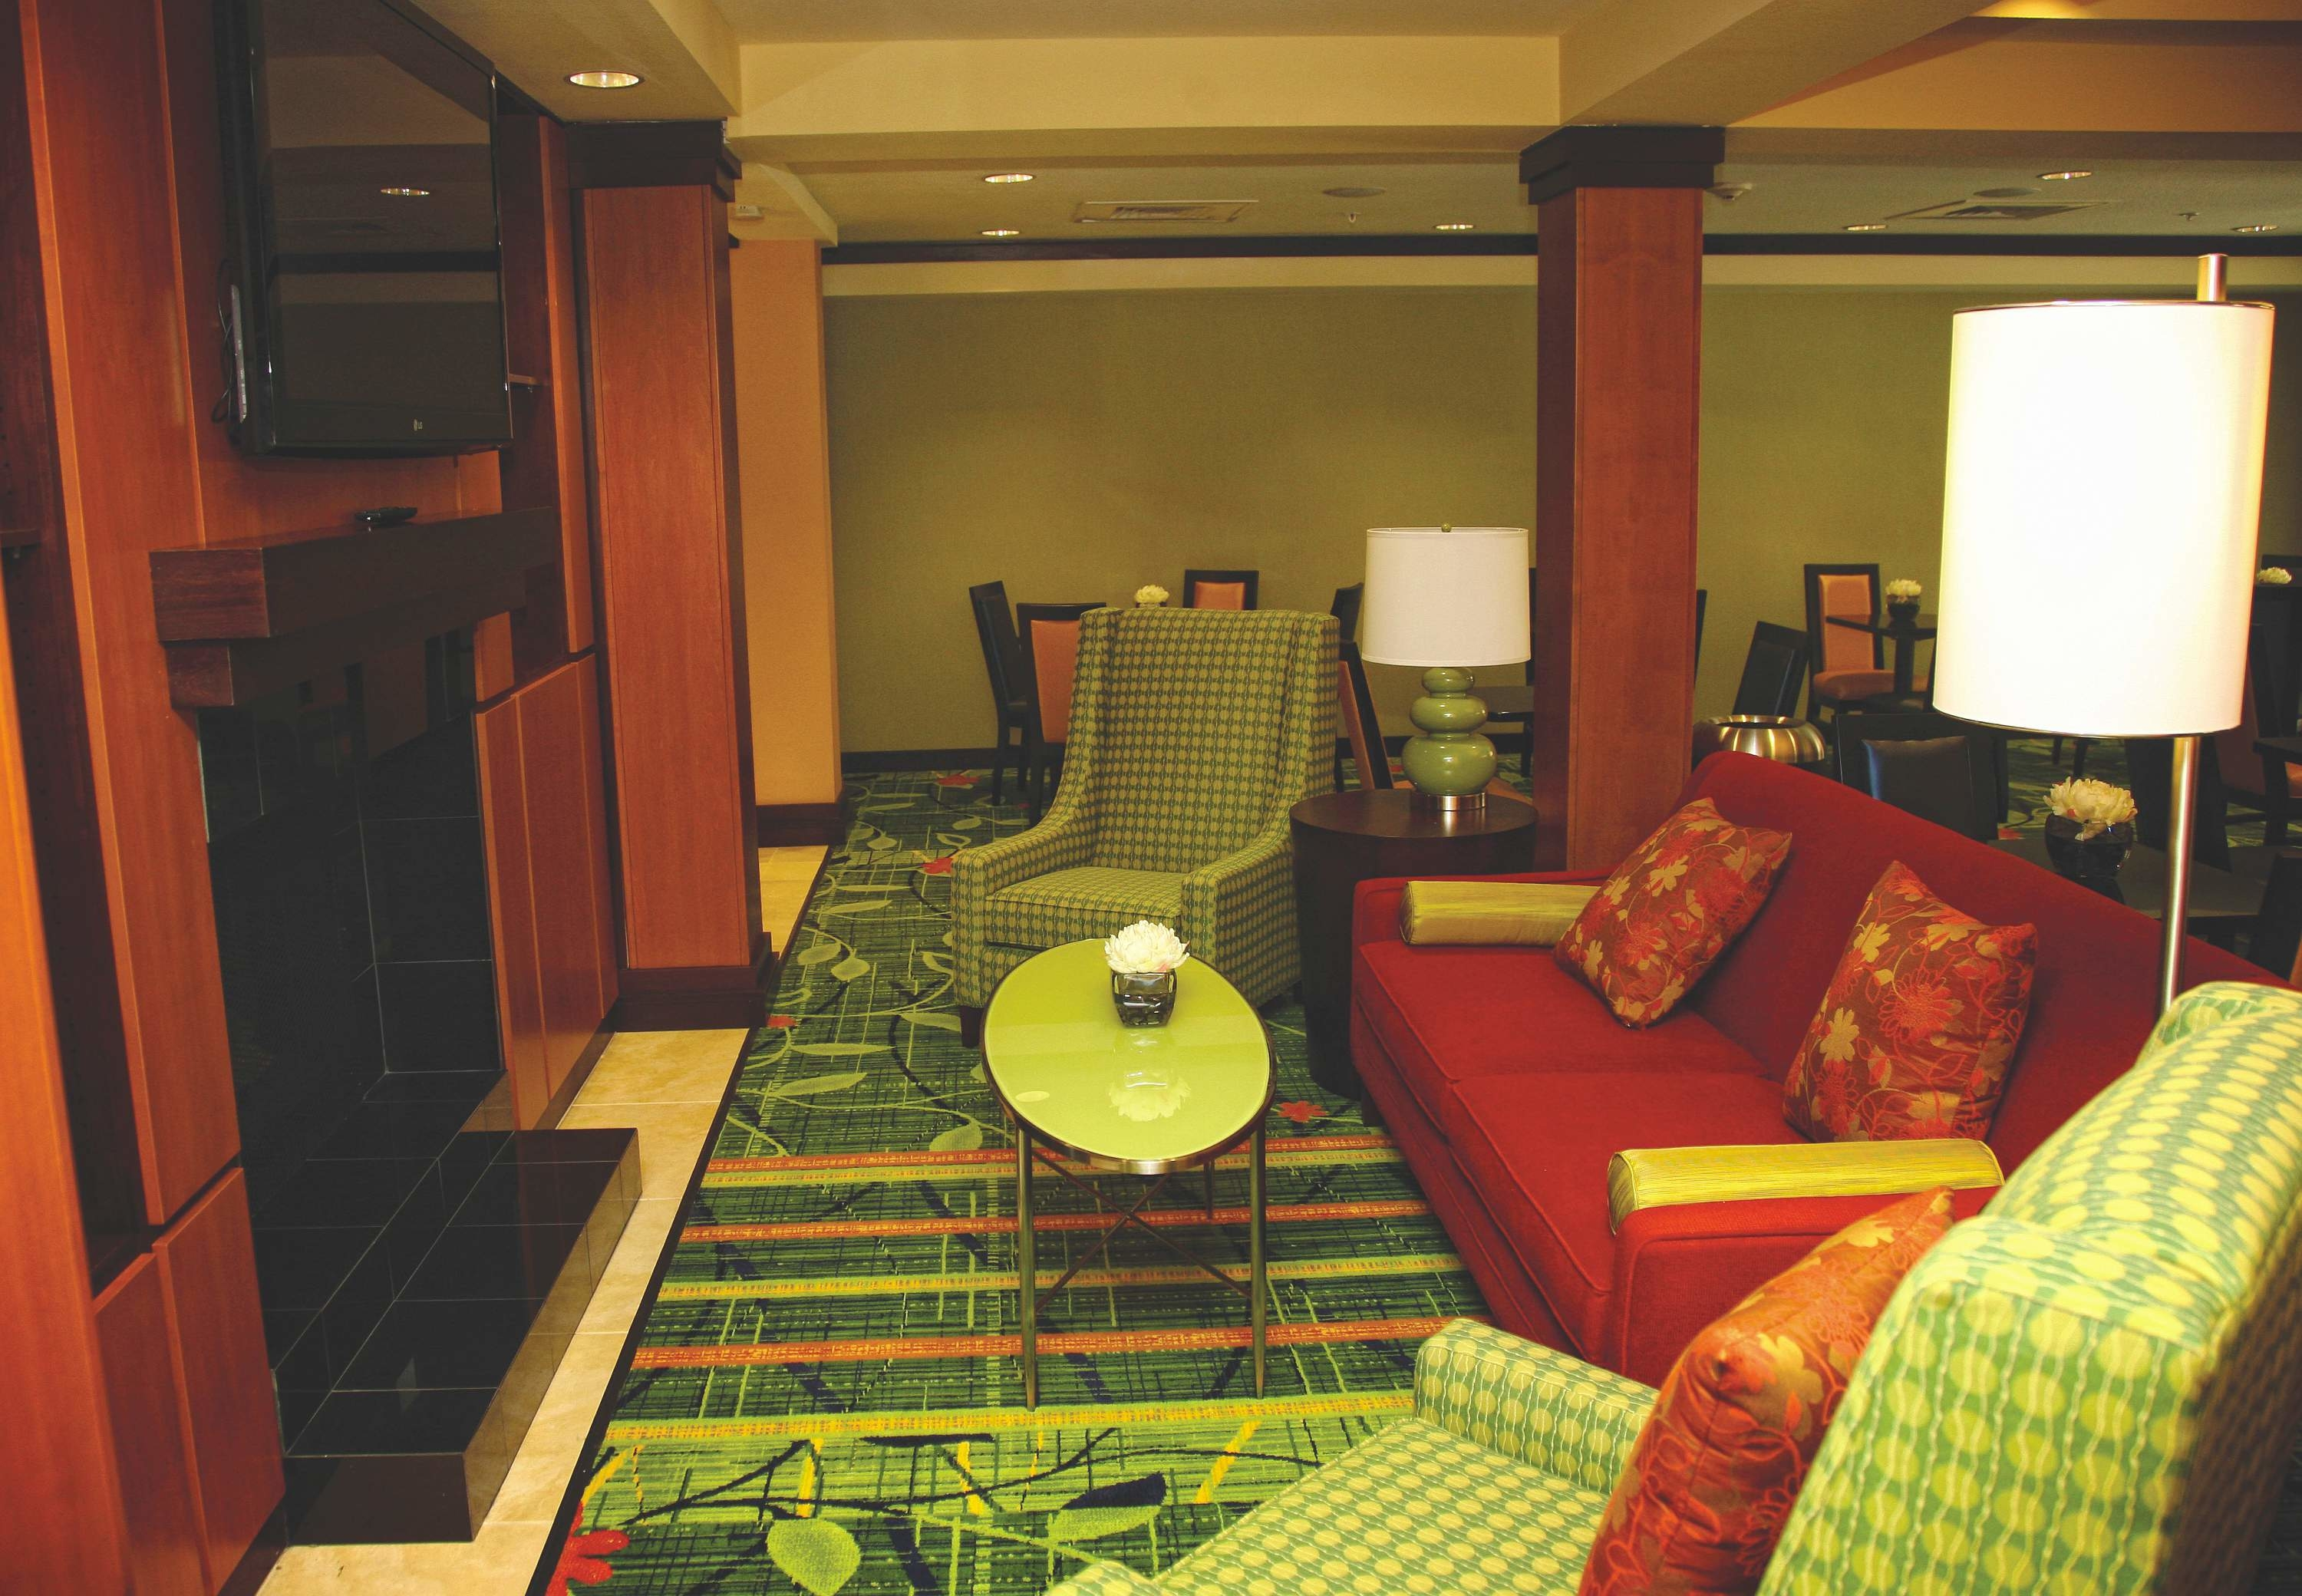 Fairfield Inn & Suites by Marriott Texarkana image 5